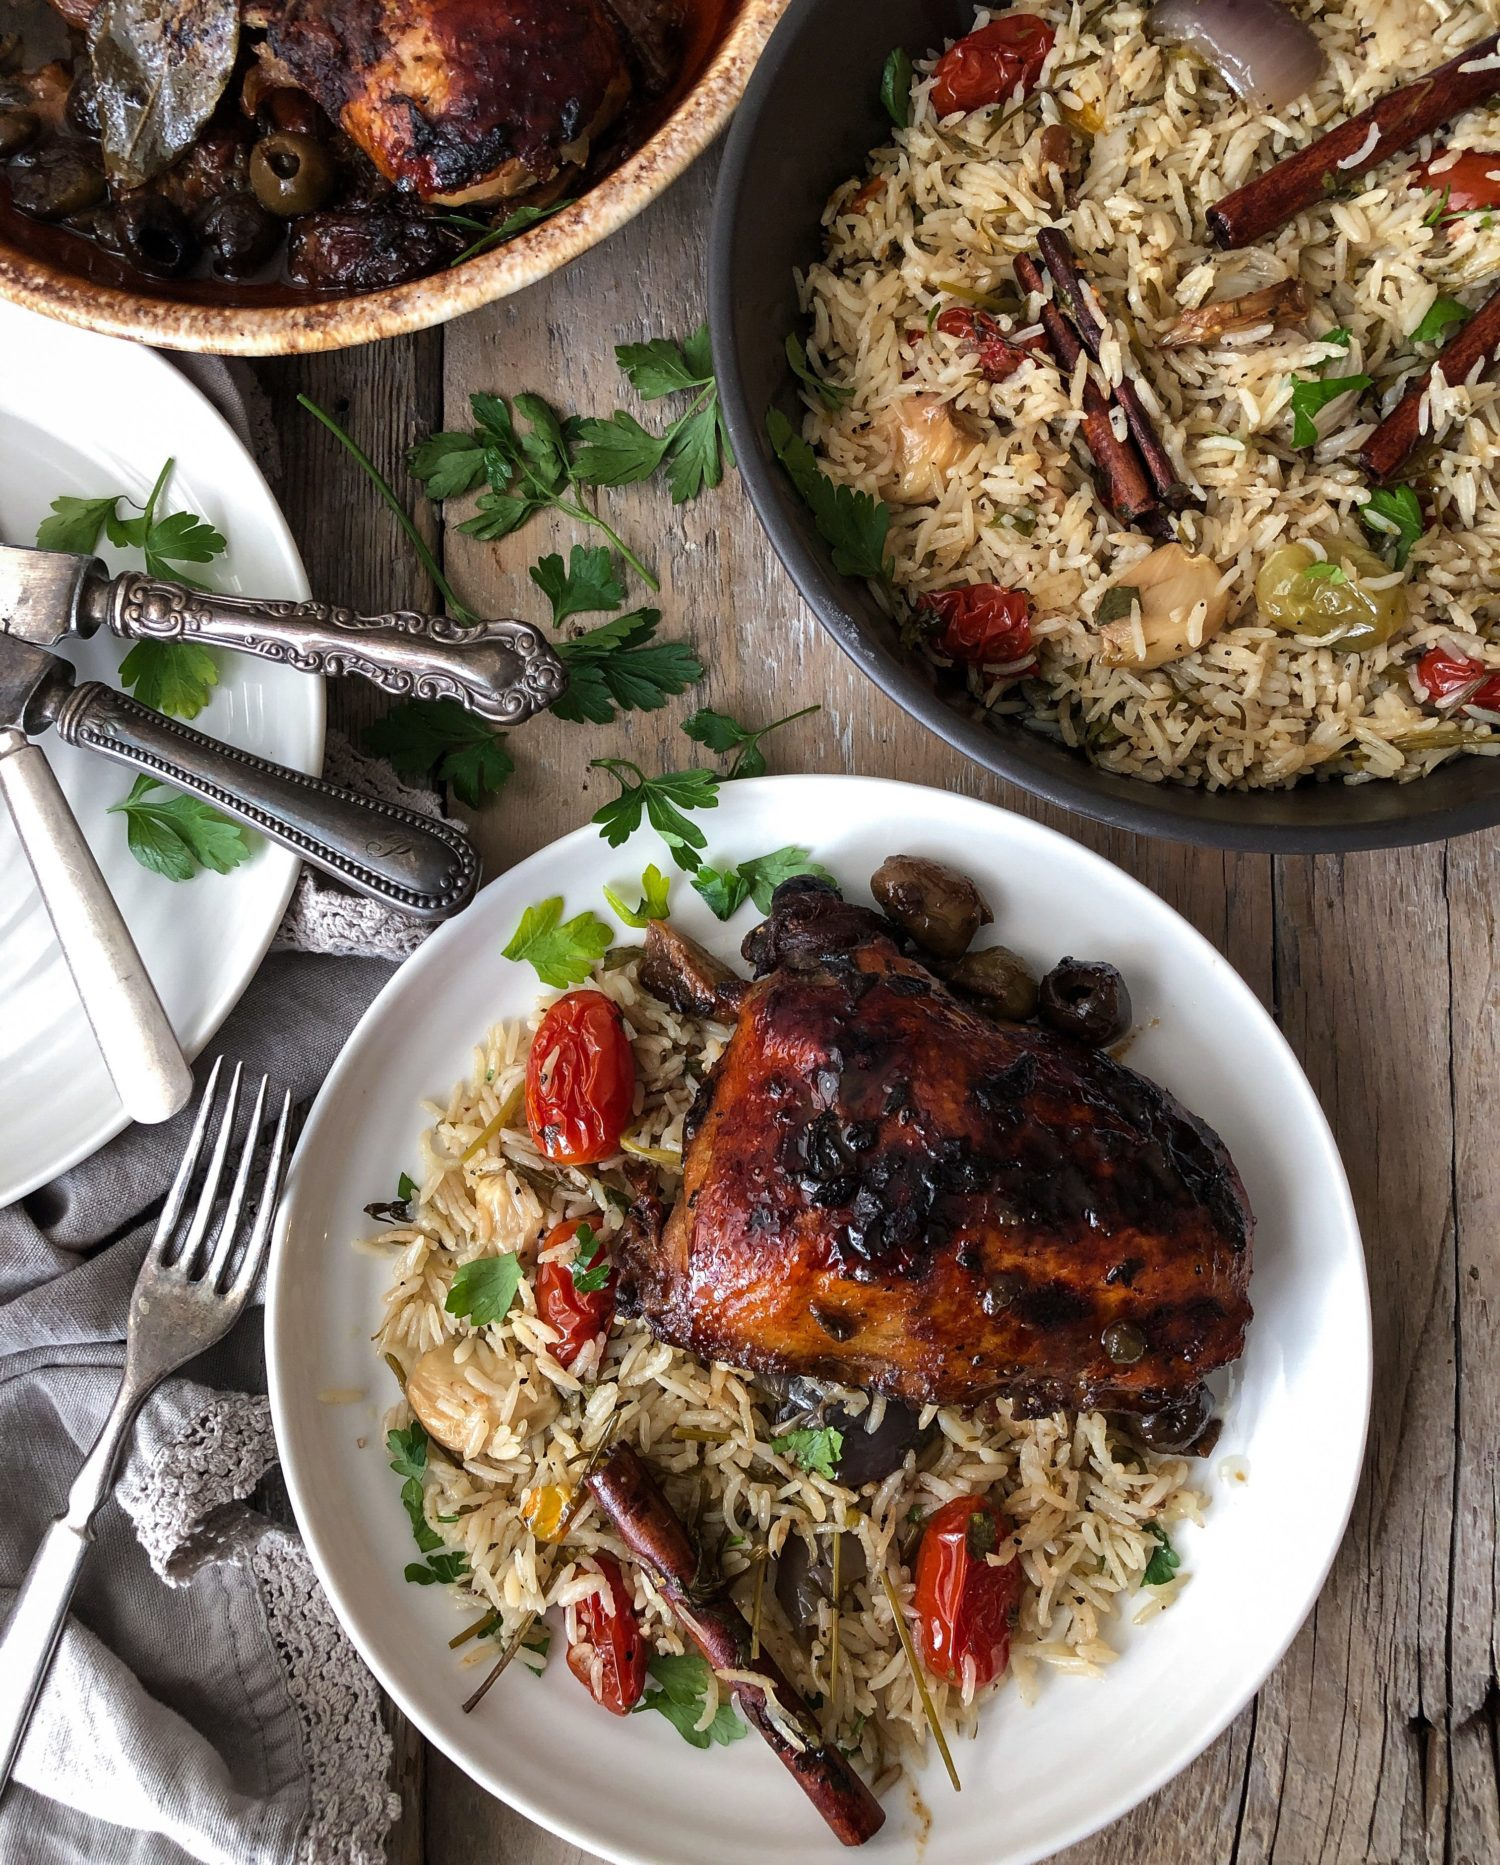 Ottolenghi exotic and flavourful Marbella Chicken and Tomato Confit Rice from Simple